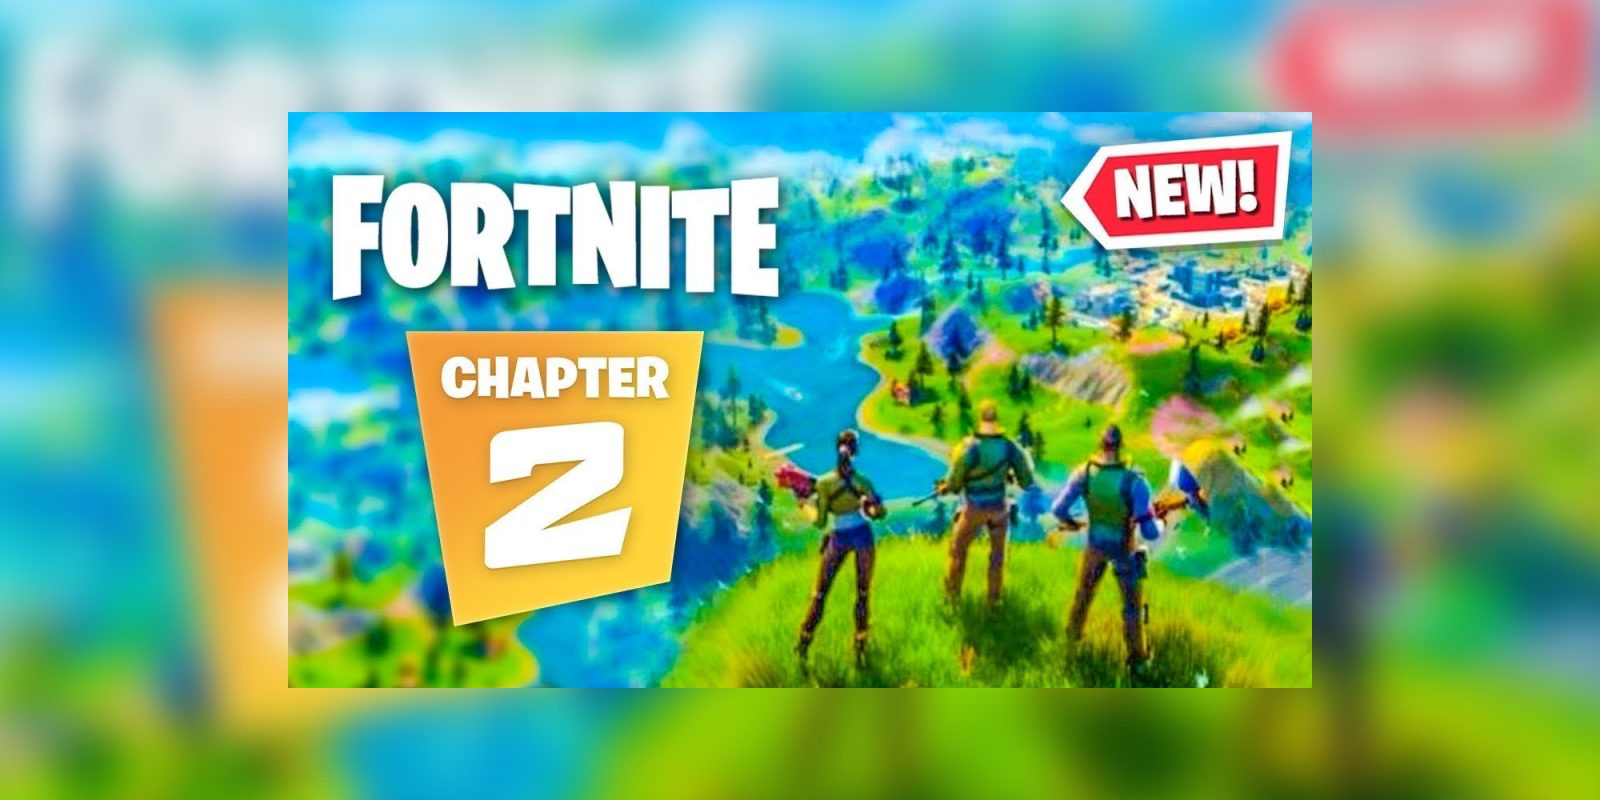 Leaked Fortnite Chapter 2 Trailer Shows New Map And More